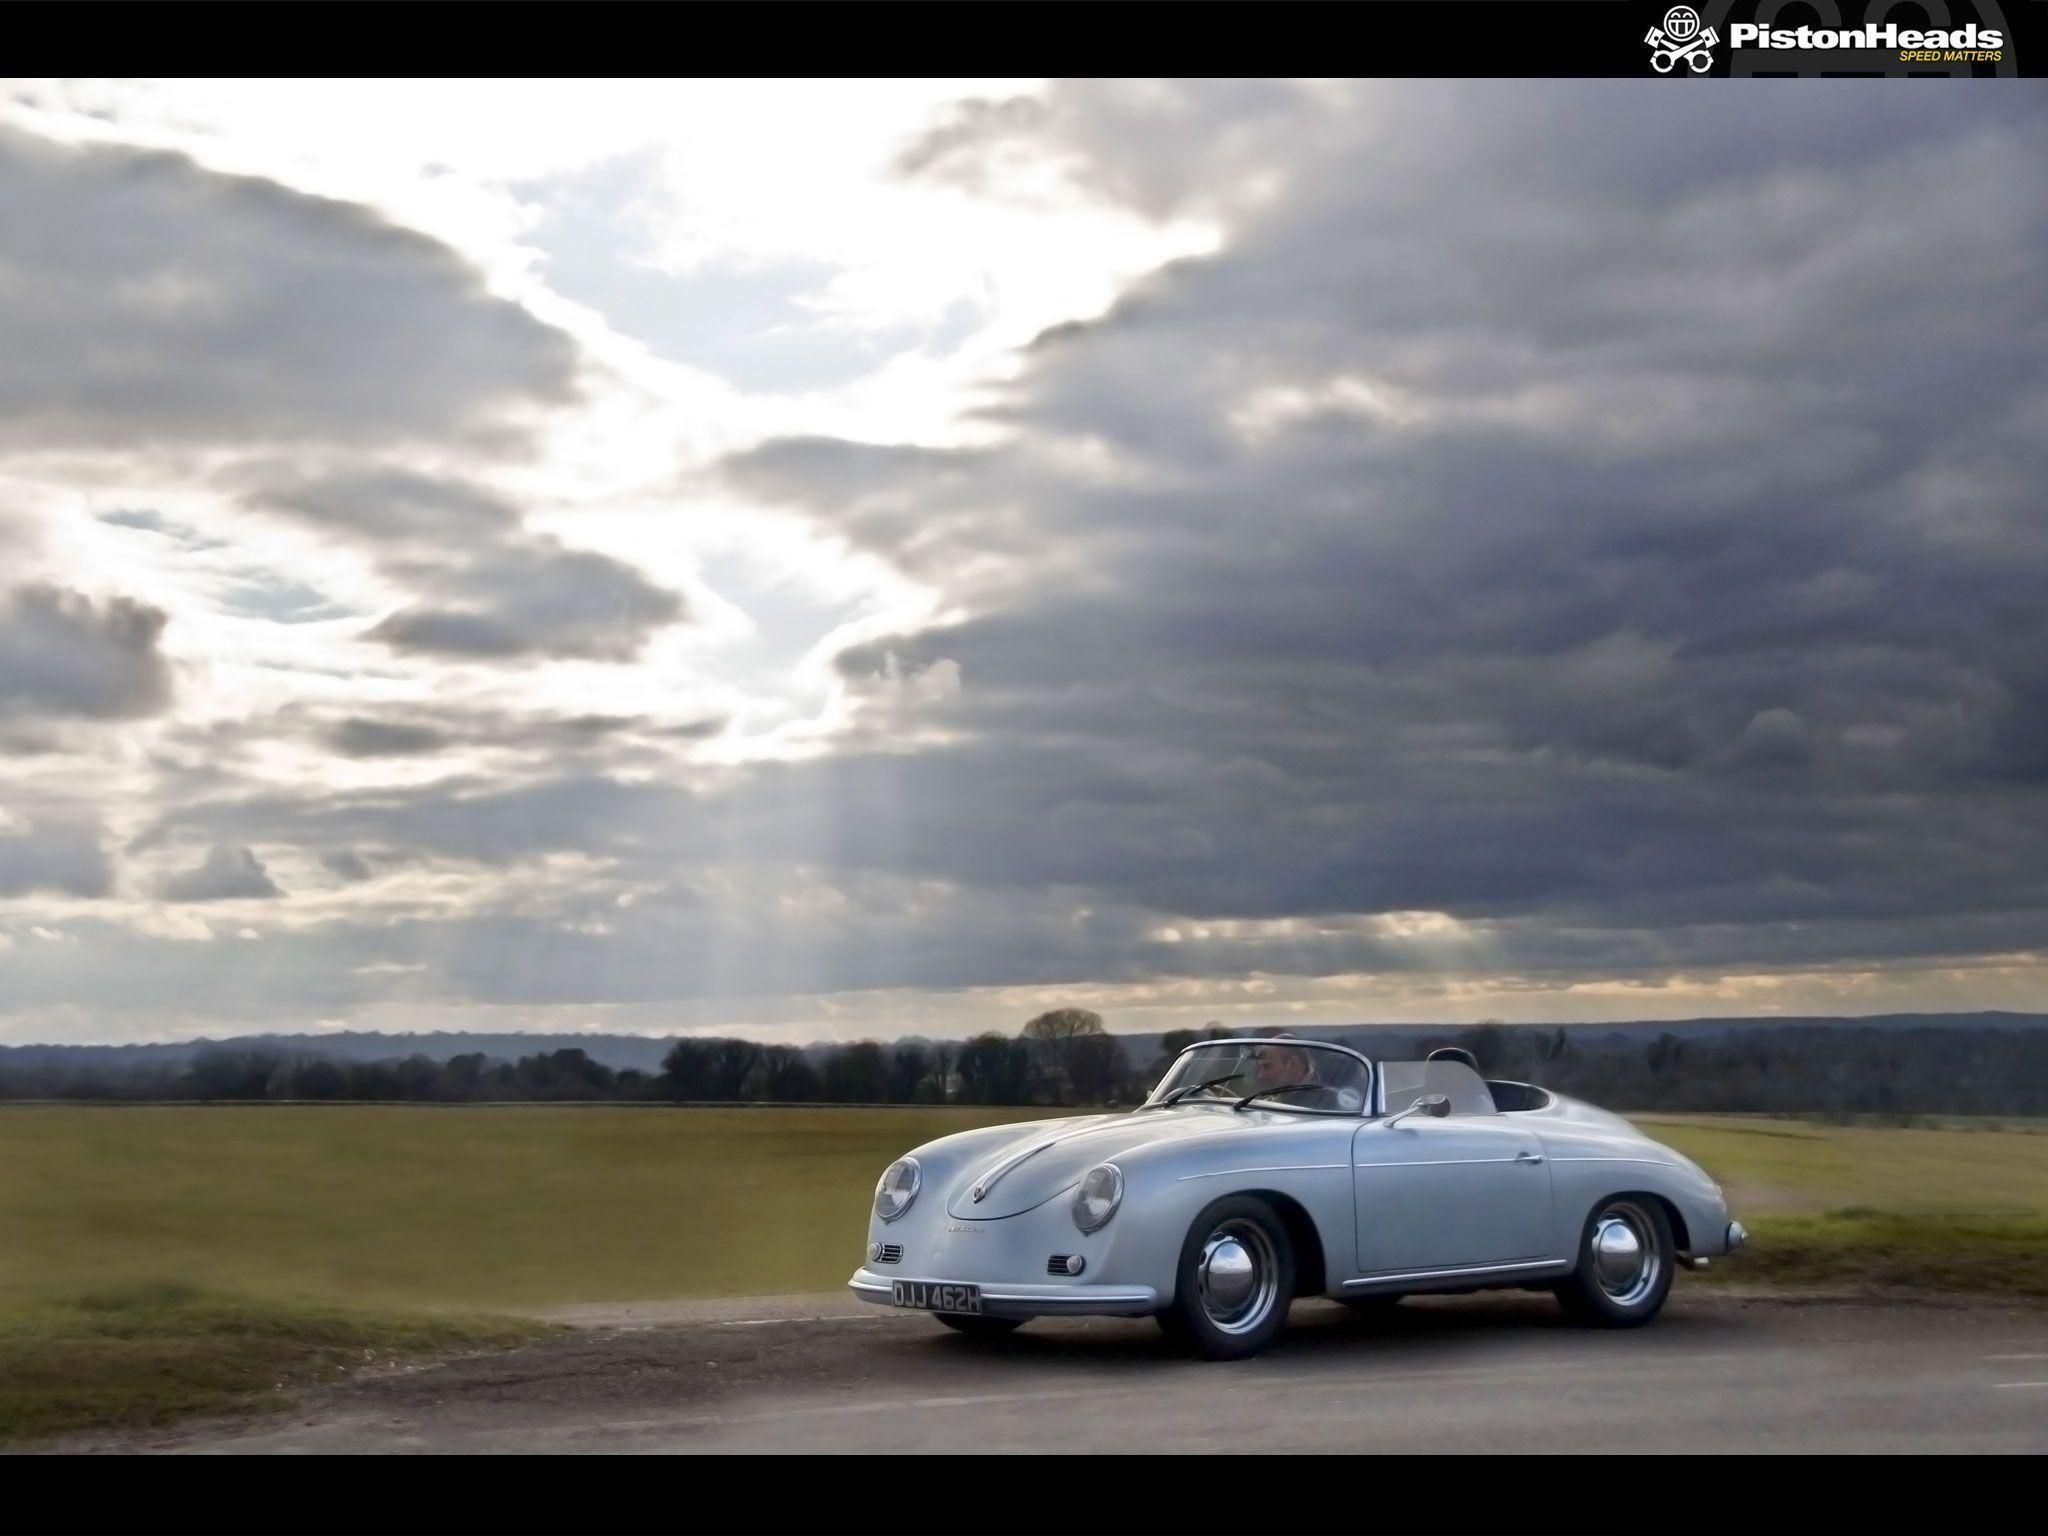 Porsche 356 Wallpapers Hd Wallpapers Base Porsche 356 Porsche